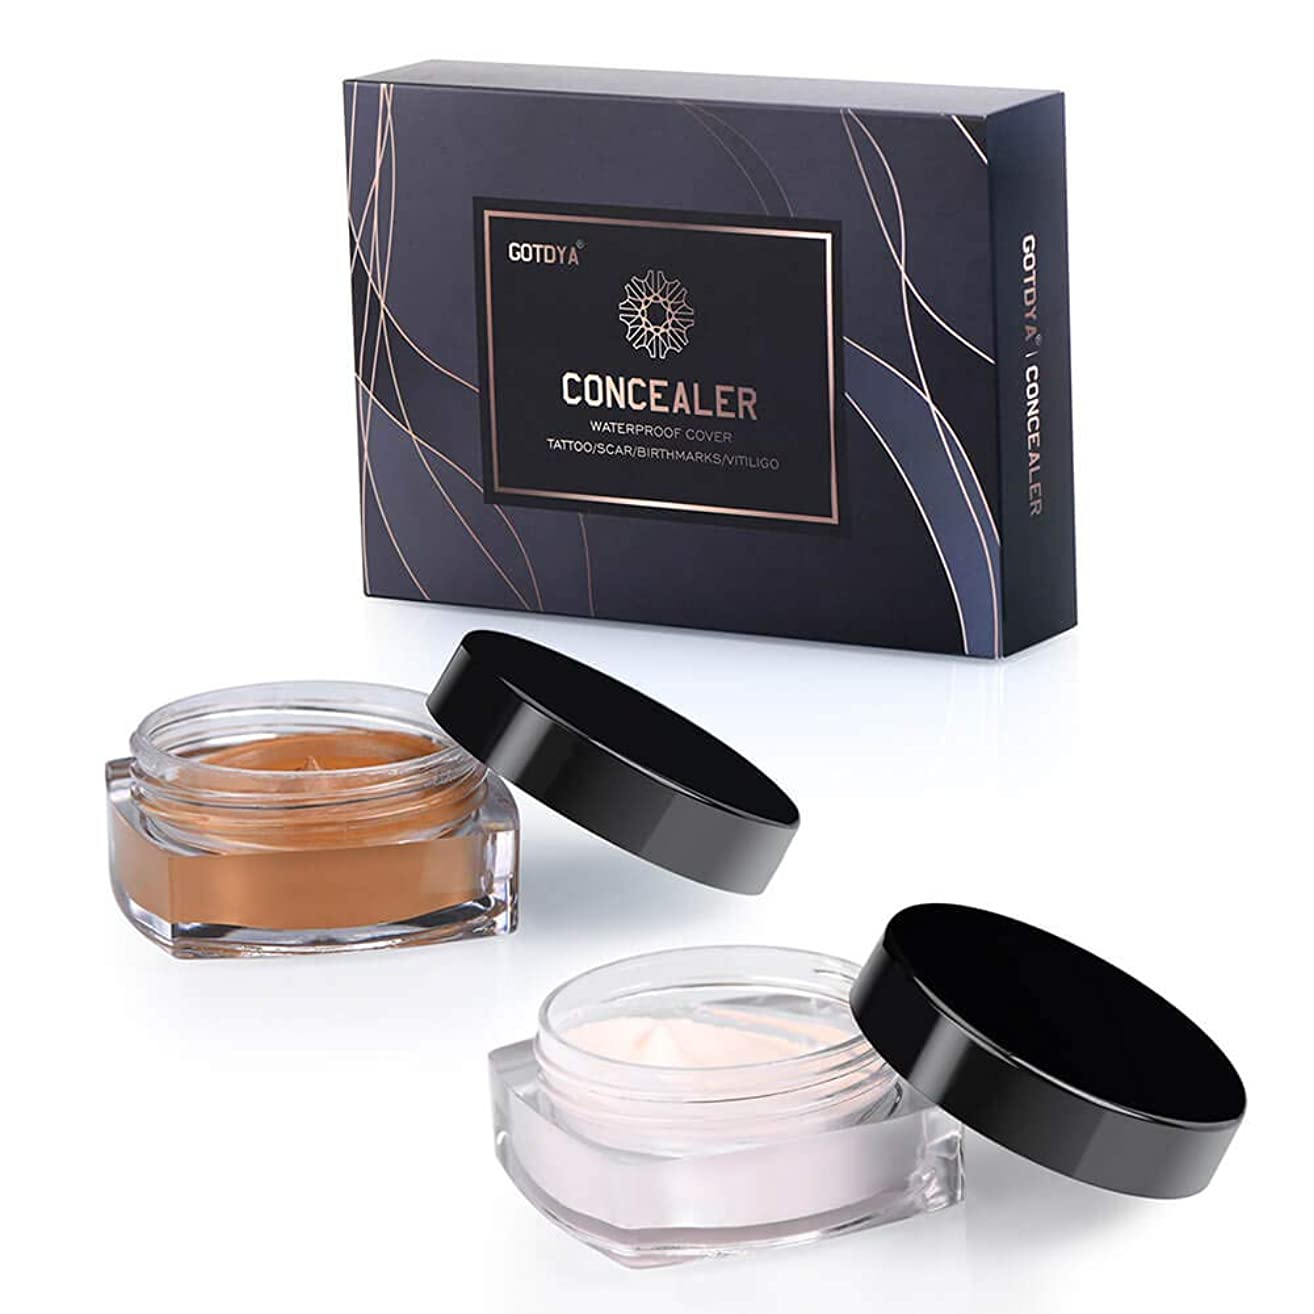 Concealer Set for Tattoo Cover Up Makeup Waterproof, Professional Concealer Cream Kit to Covers Vitiligo, Birthmarks, Scar, Tattoos and other Skin Dark Spots